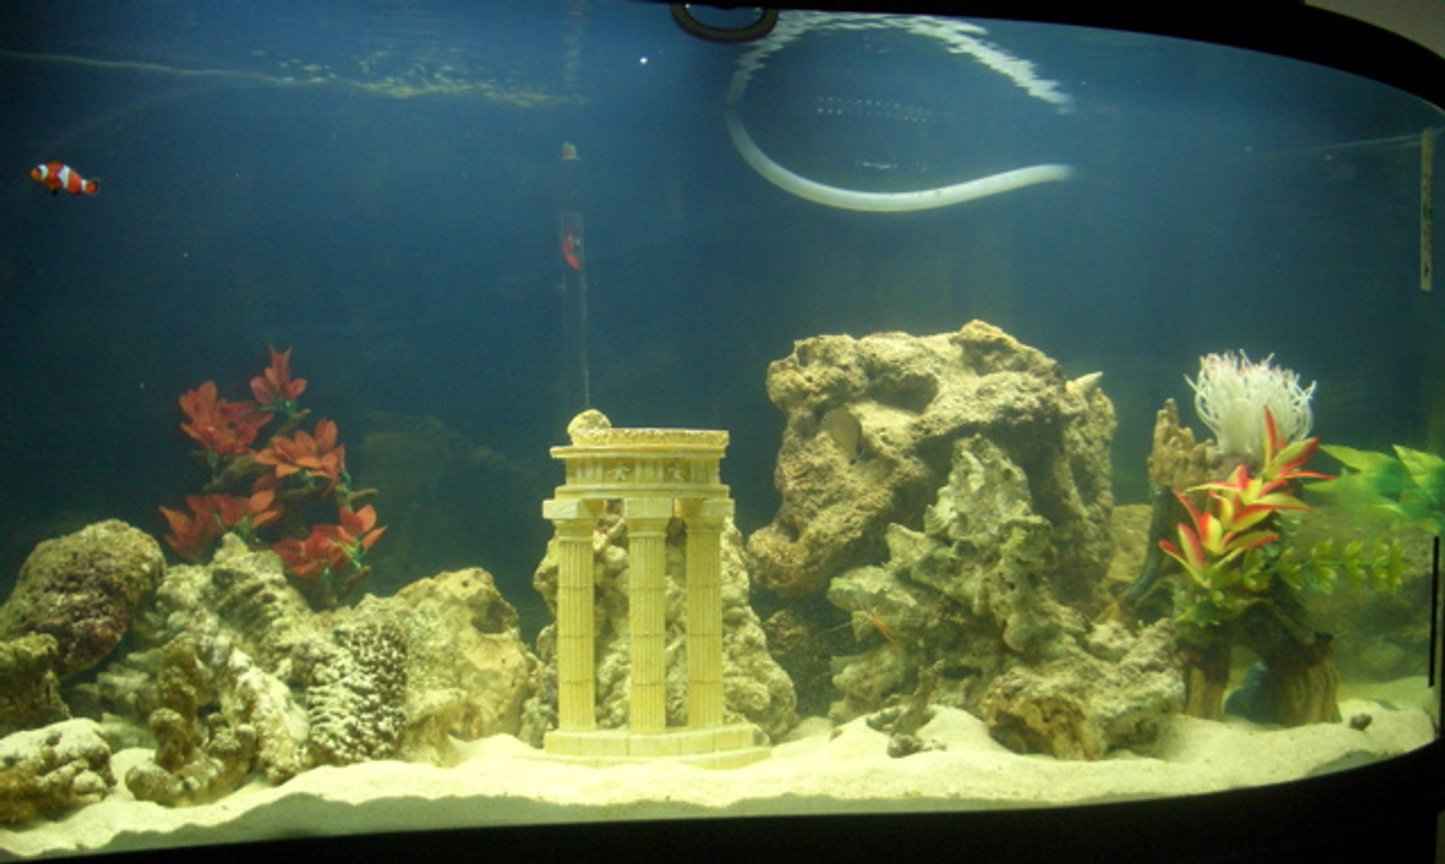 95 gallons freshwater fish tank (mostly fish and non-living decorations) - 95 Gallon WAVE tank. Eible Angel, 3-Stripe Damsel, Royal Gramma, Bullet Goby, True Percula Clown, Regal Tang. UV sterilizer, Berlin Protein skimmer. Wet/Dry filter w/overflow powered by Rio 2100+. 100 pounds of live rock, 100 pounds of live sand. 2 Cleaner shrimp. 5 Turbo Snails.